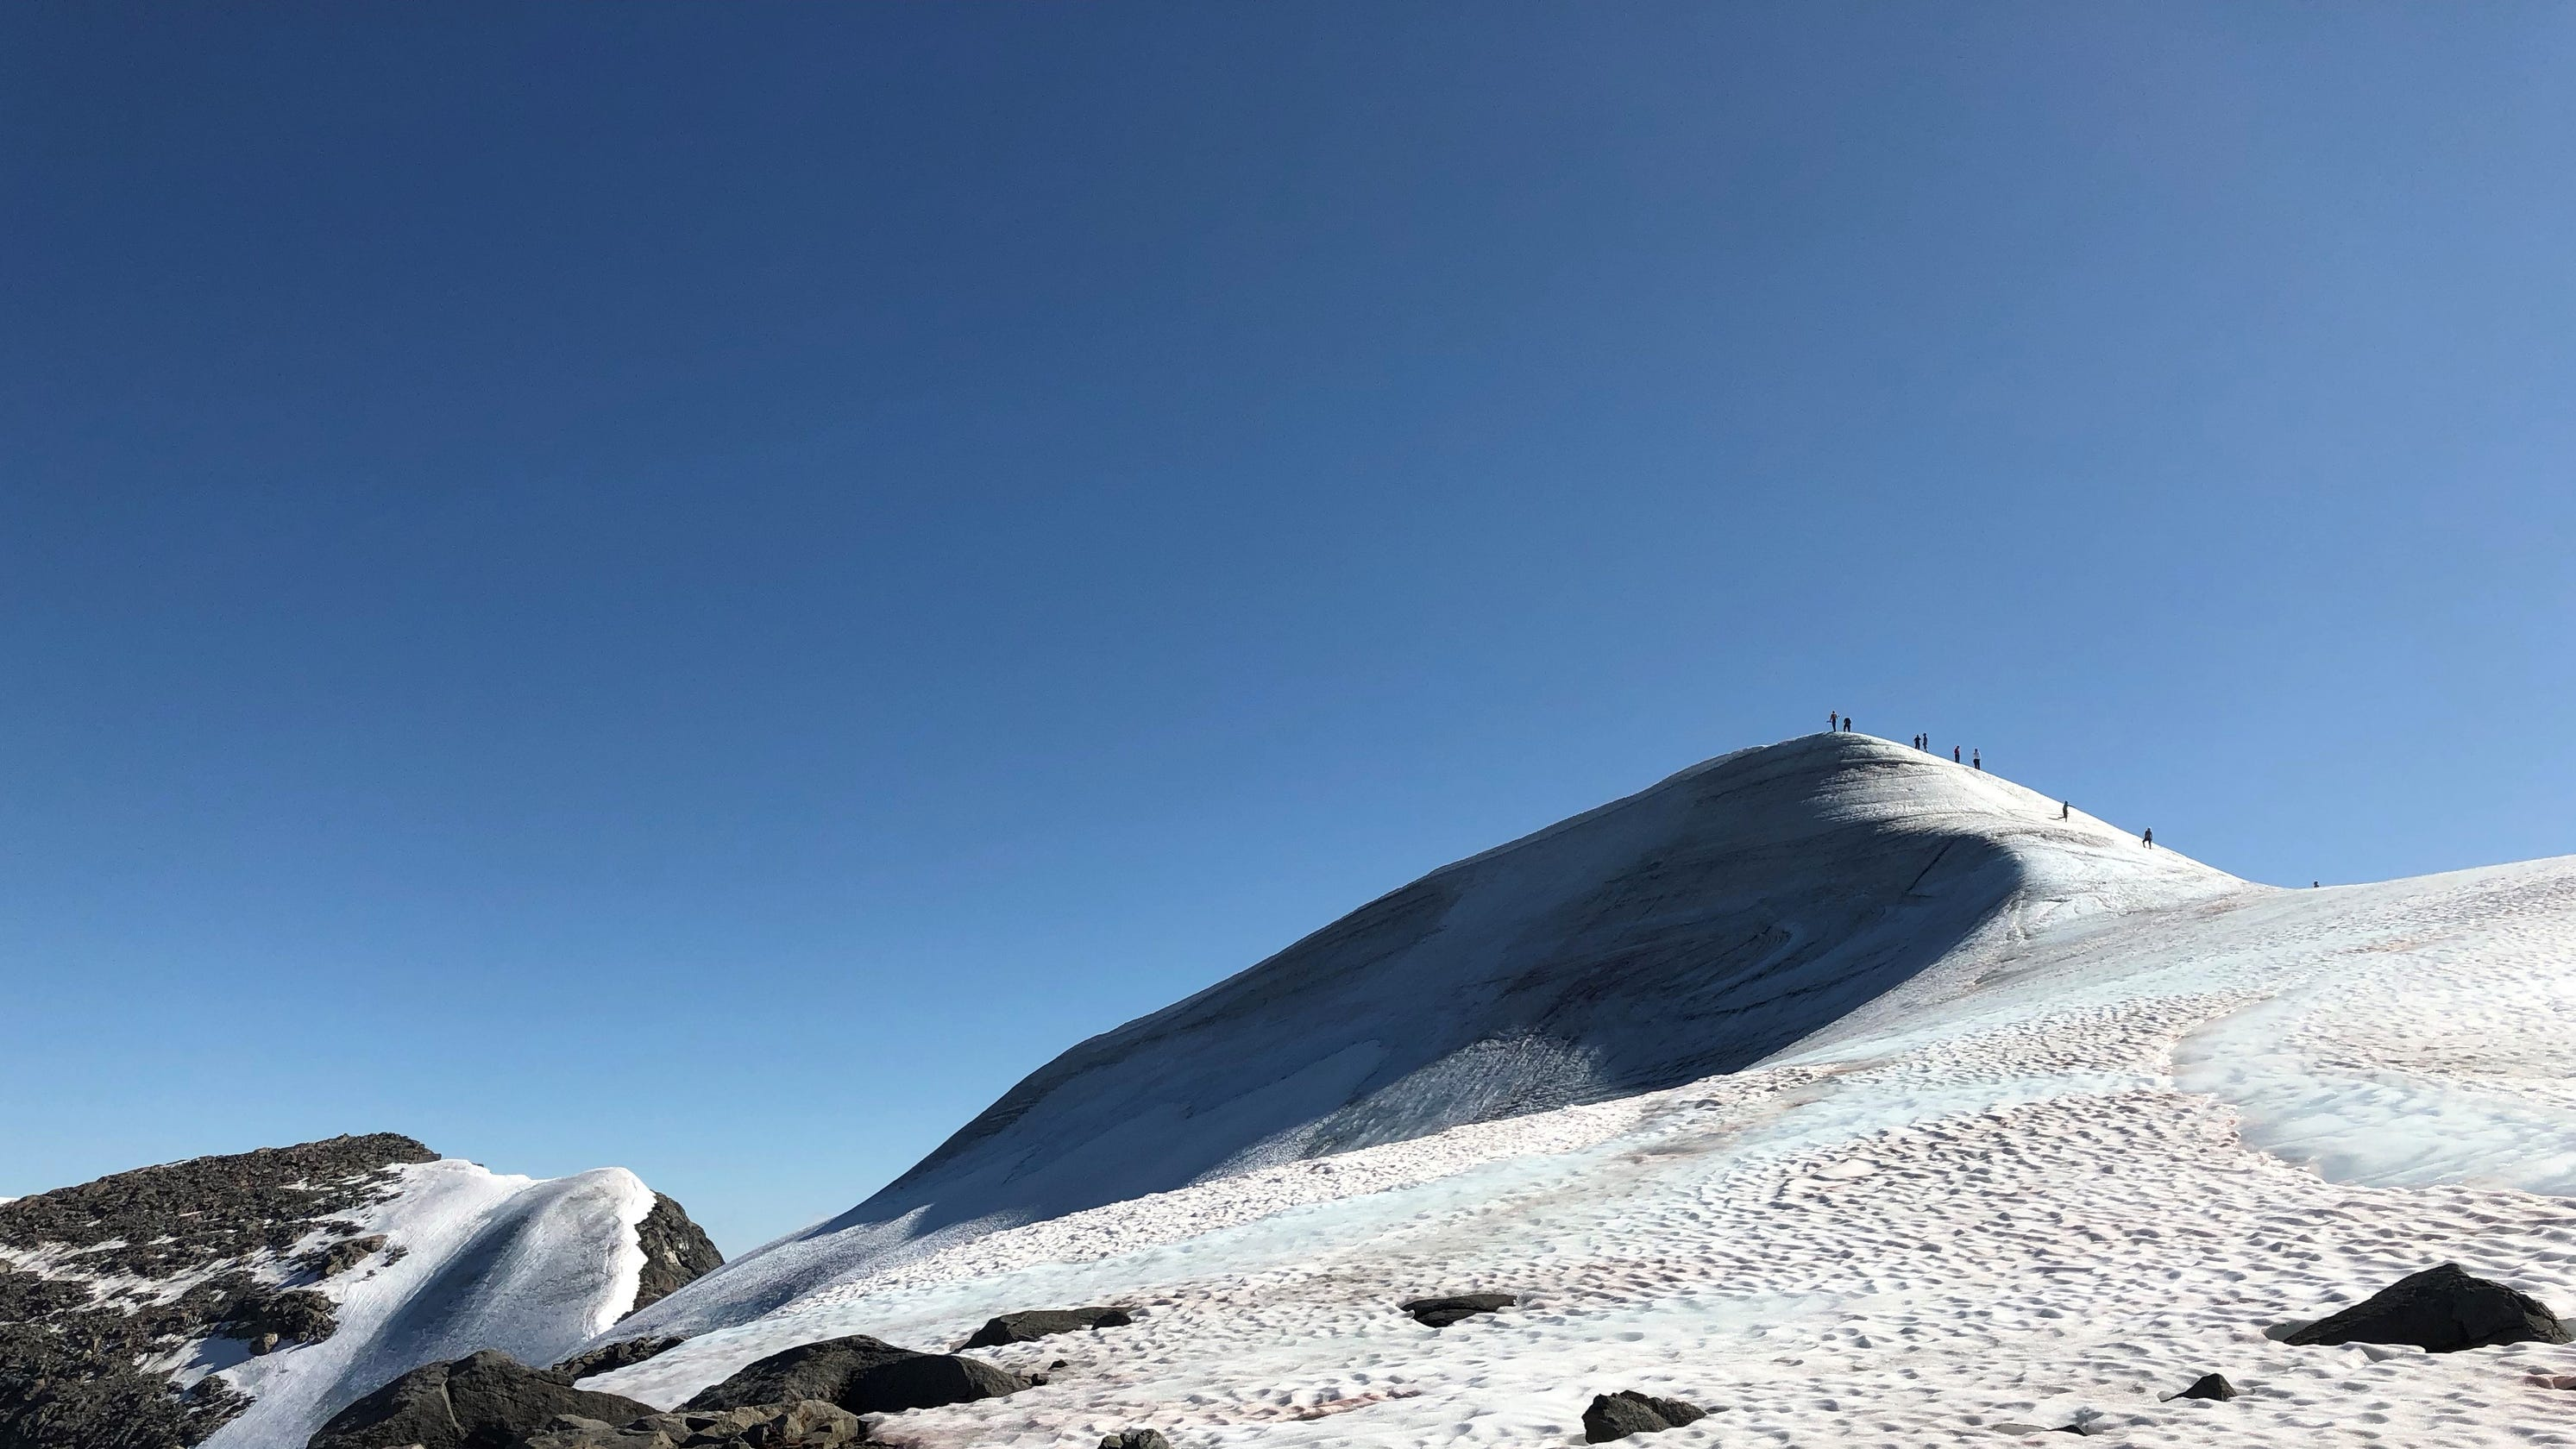 Sweden's highest peak shrinks, loses tallest status, thanks to a warmer climate - USA TODAY